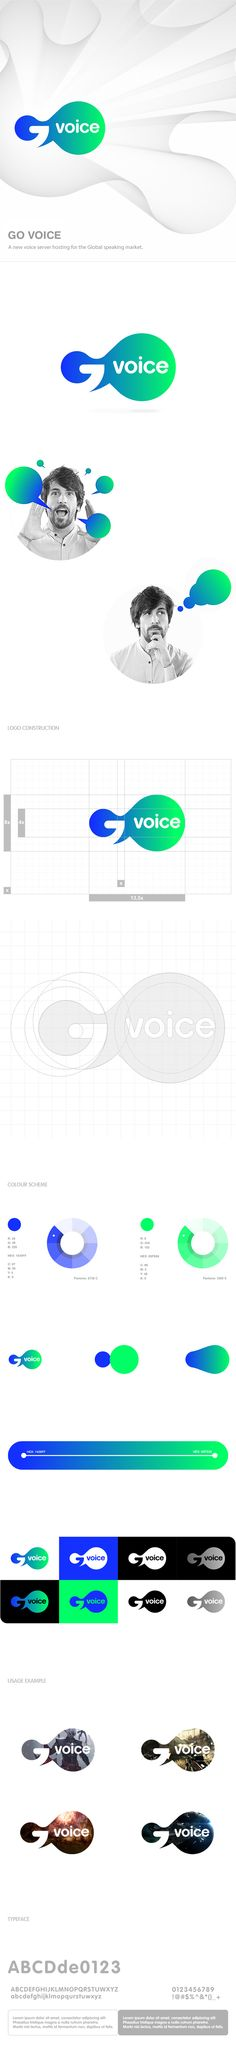 Go Voice by Fuse Collective , via Behance